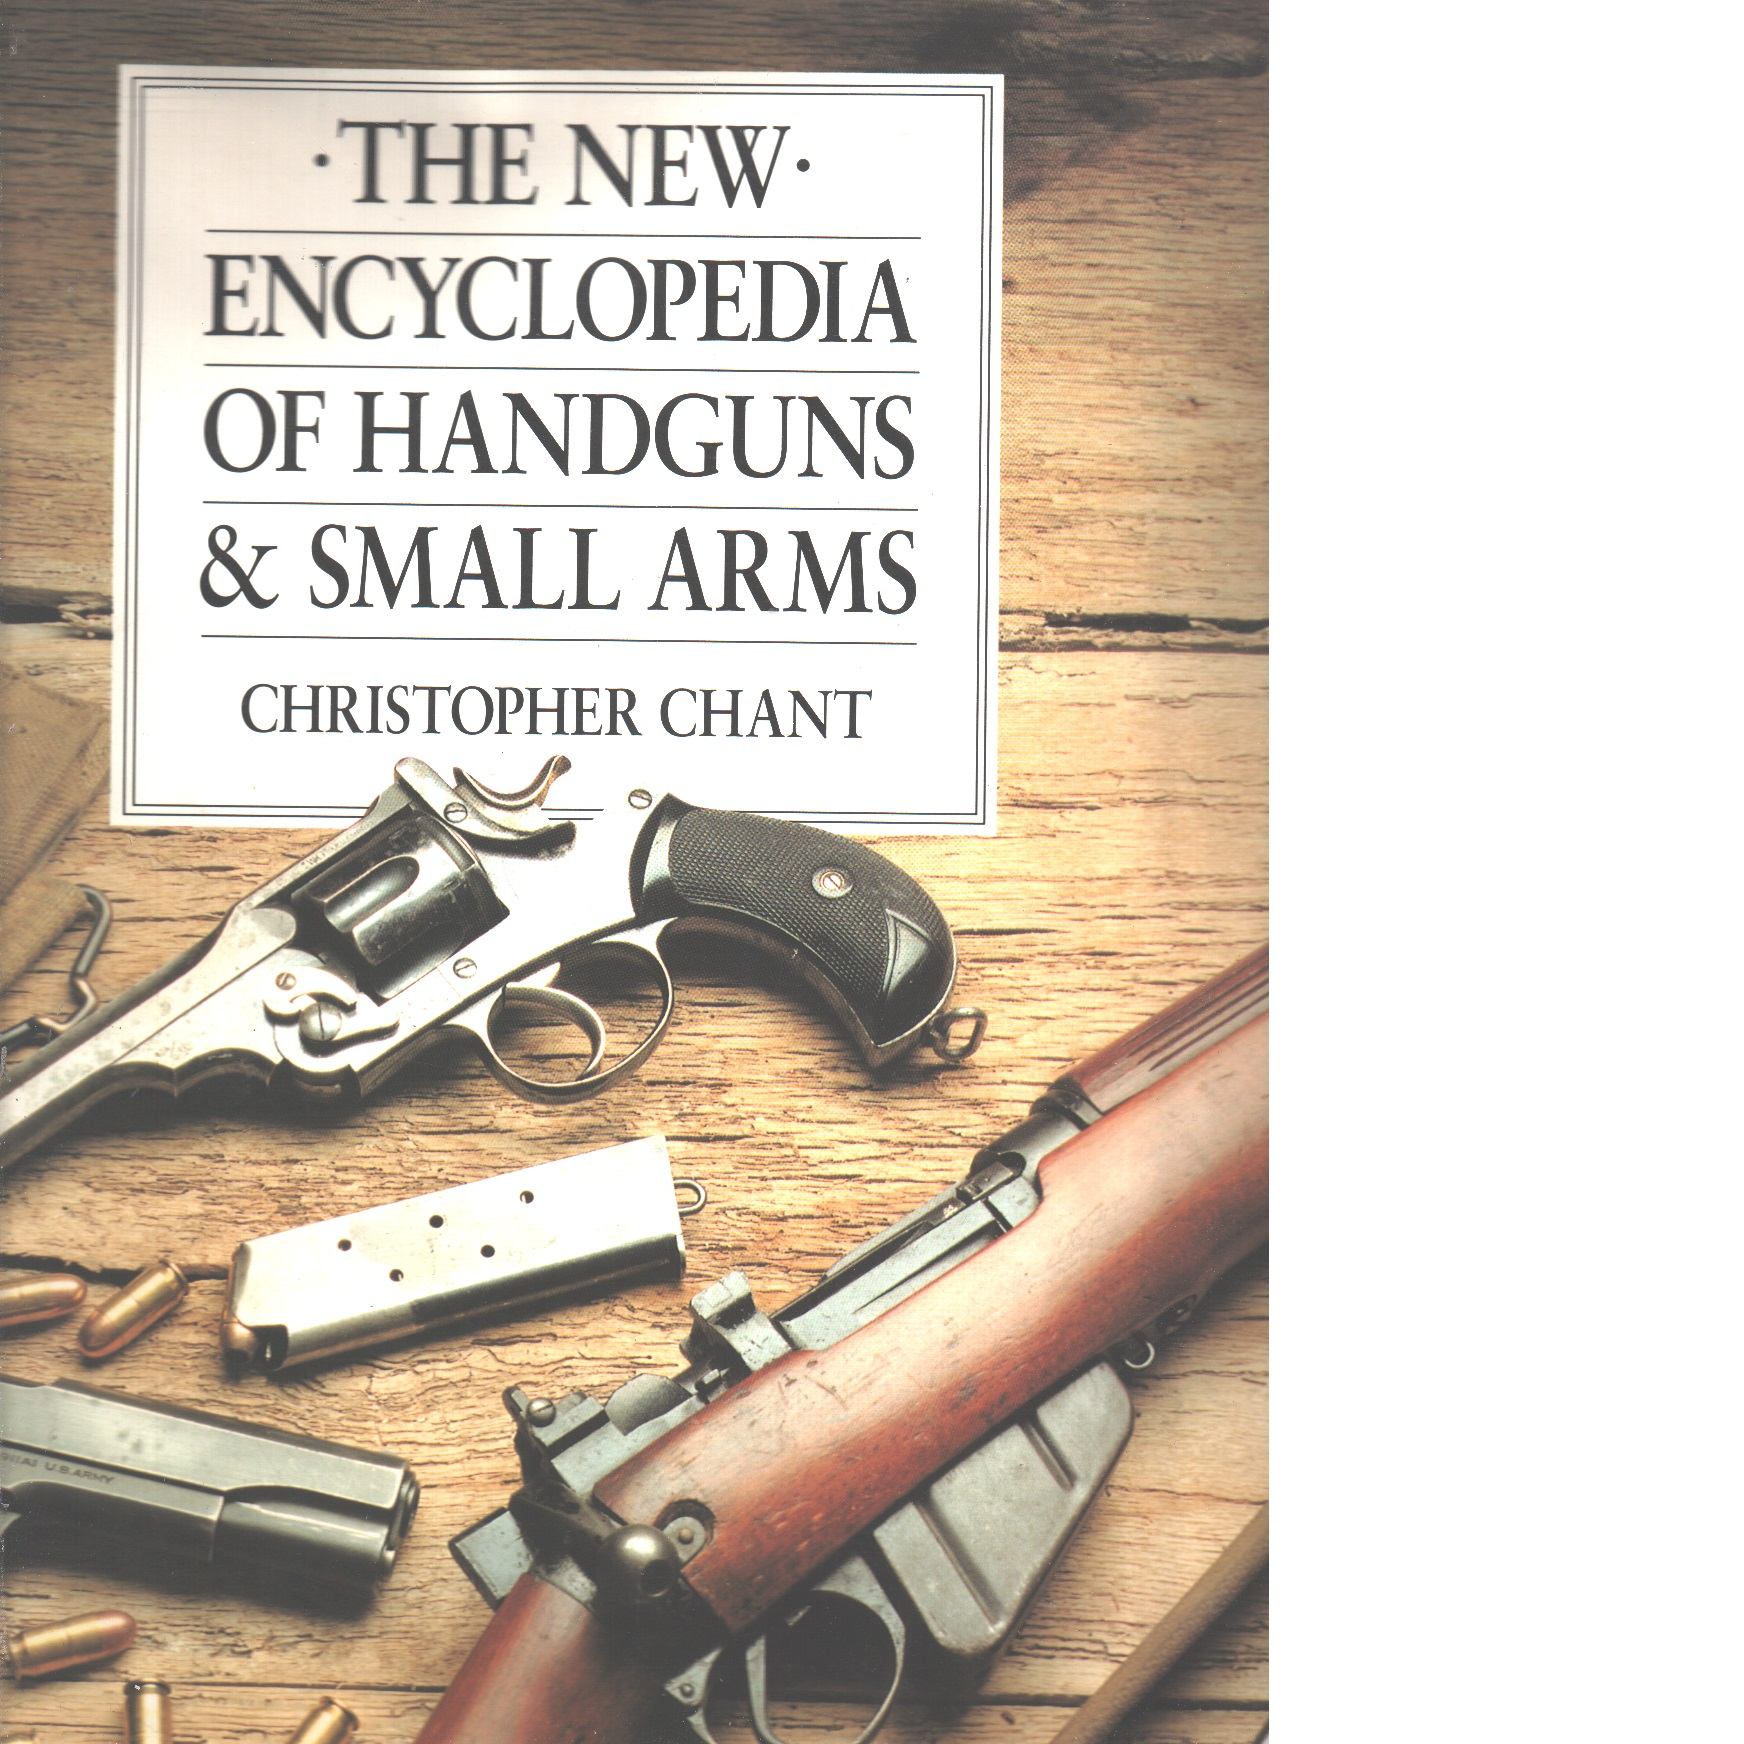 The New encyclopedia of handguns and small arms - Chant, Christopher